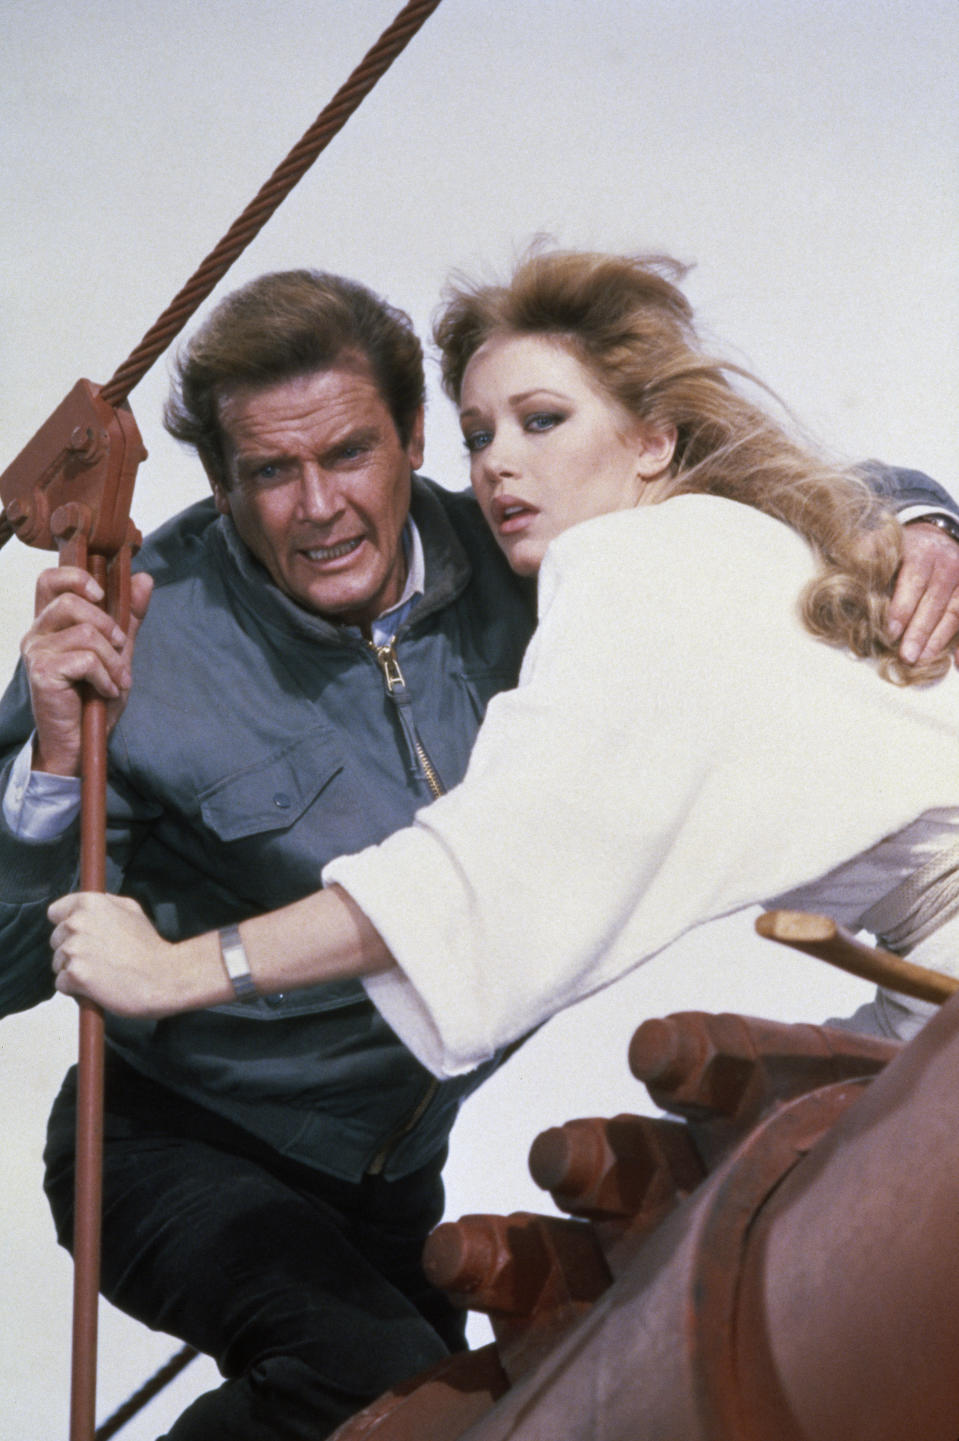 British actor Roger Moore and American actress Tanya Roberts on the set of the James Bond 007 film A View to a Kill, directed by John Glen. (Photo by Nancy Moran/Sygma via Getty Images)